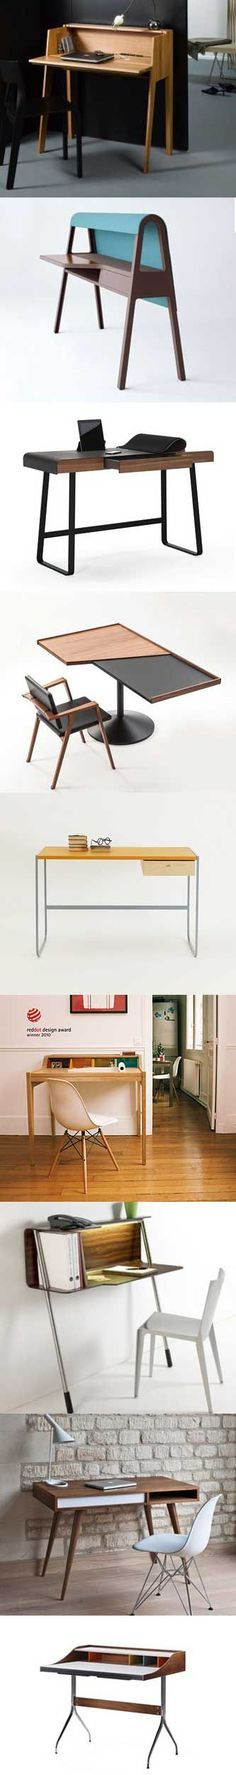 Check this hand-picked collection of desks perfect for use in your home office.